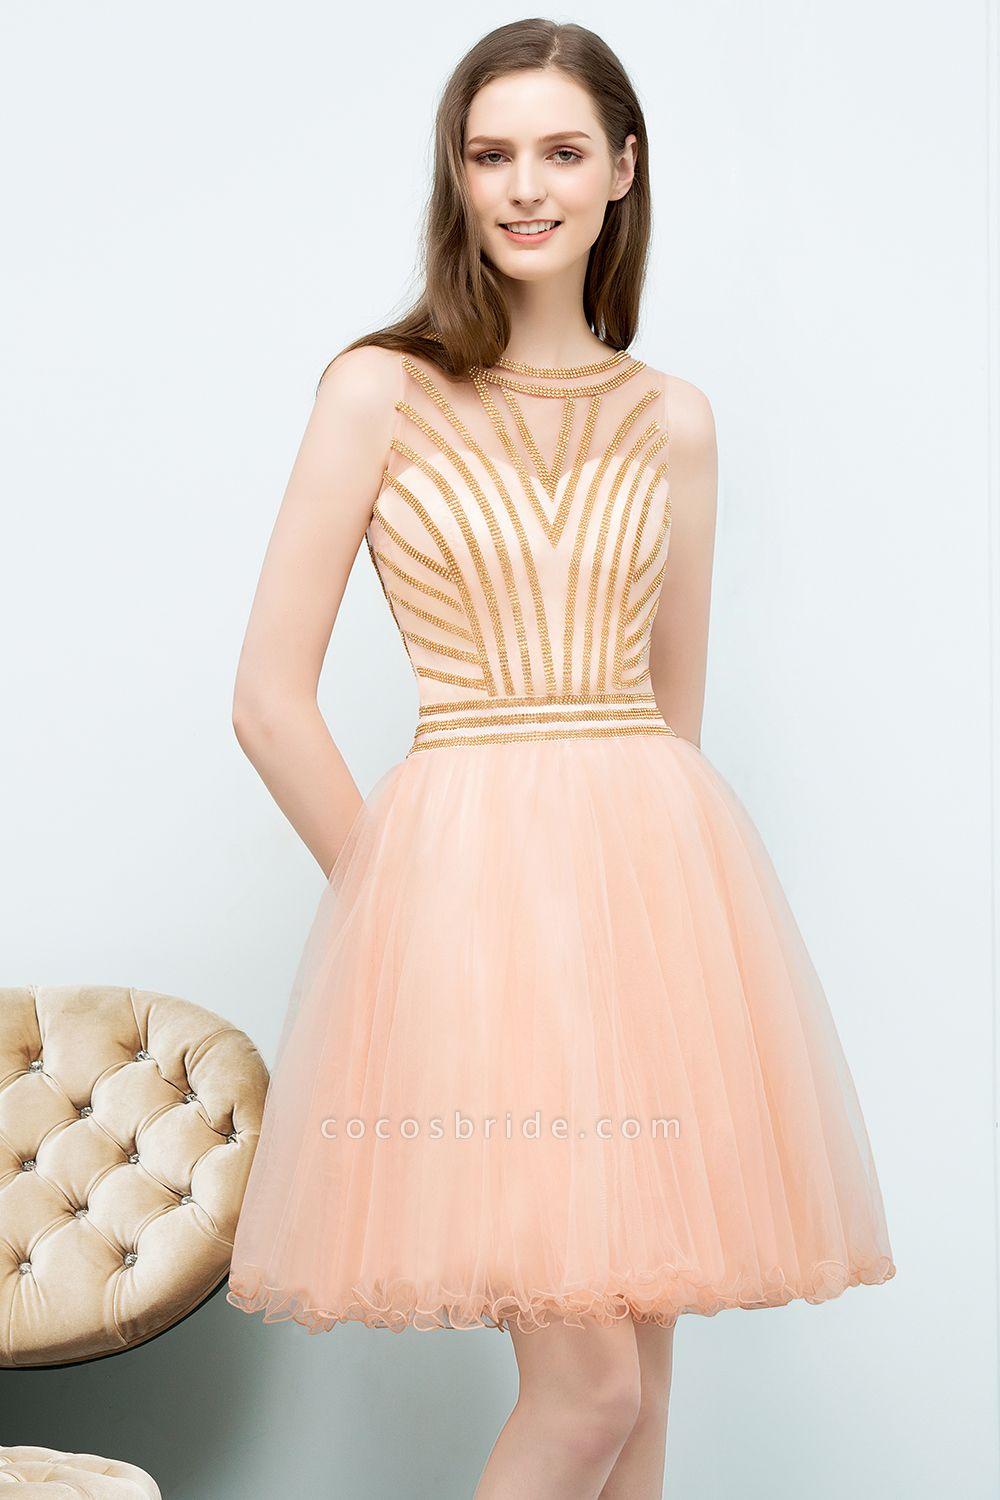 Exquisite Jewel Tulle A-line Homecoming Dress